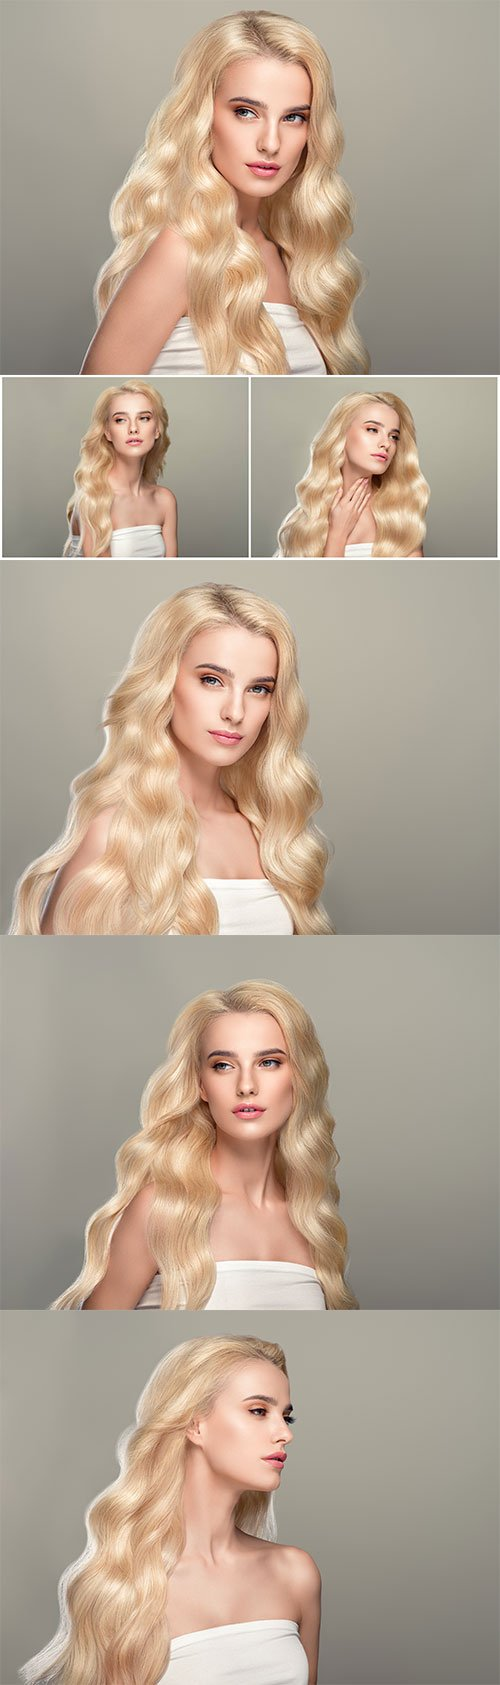 Beautiful girl with wavy white hair